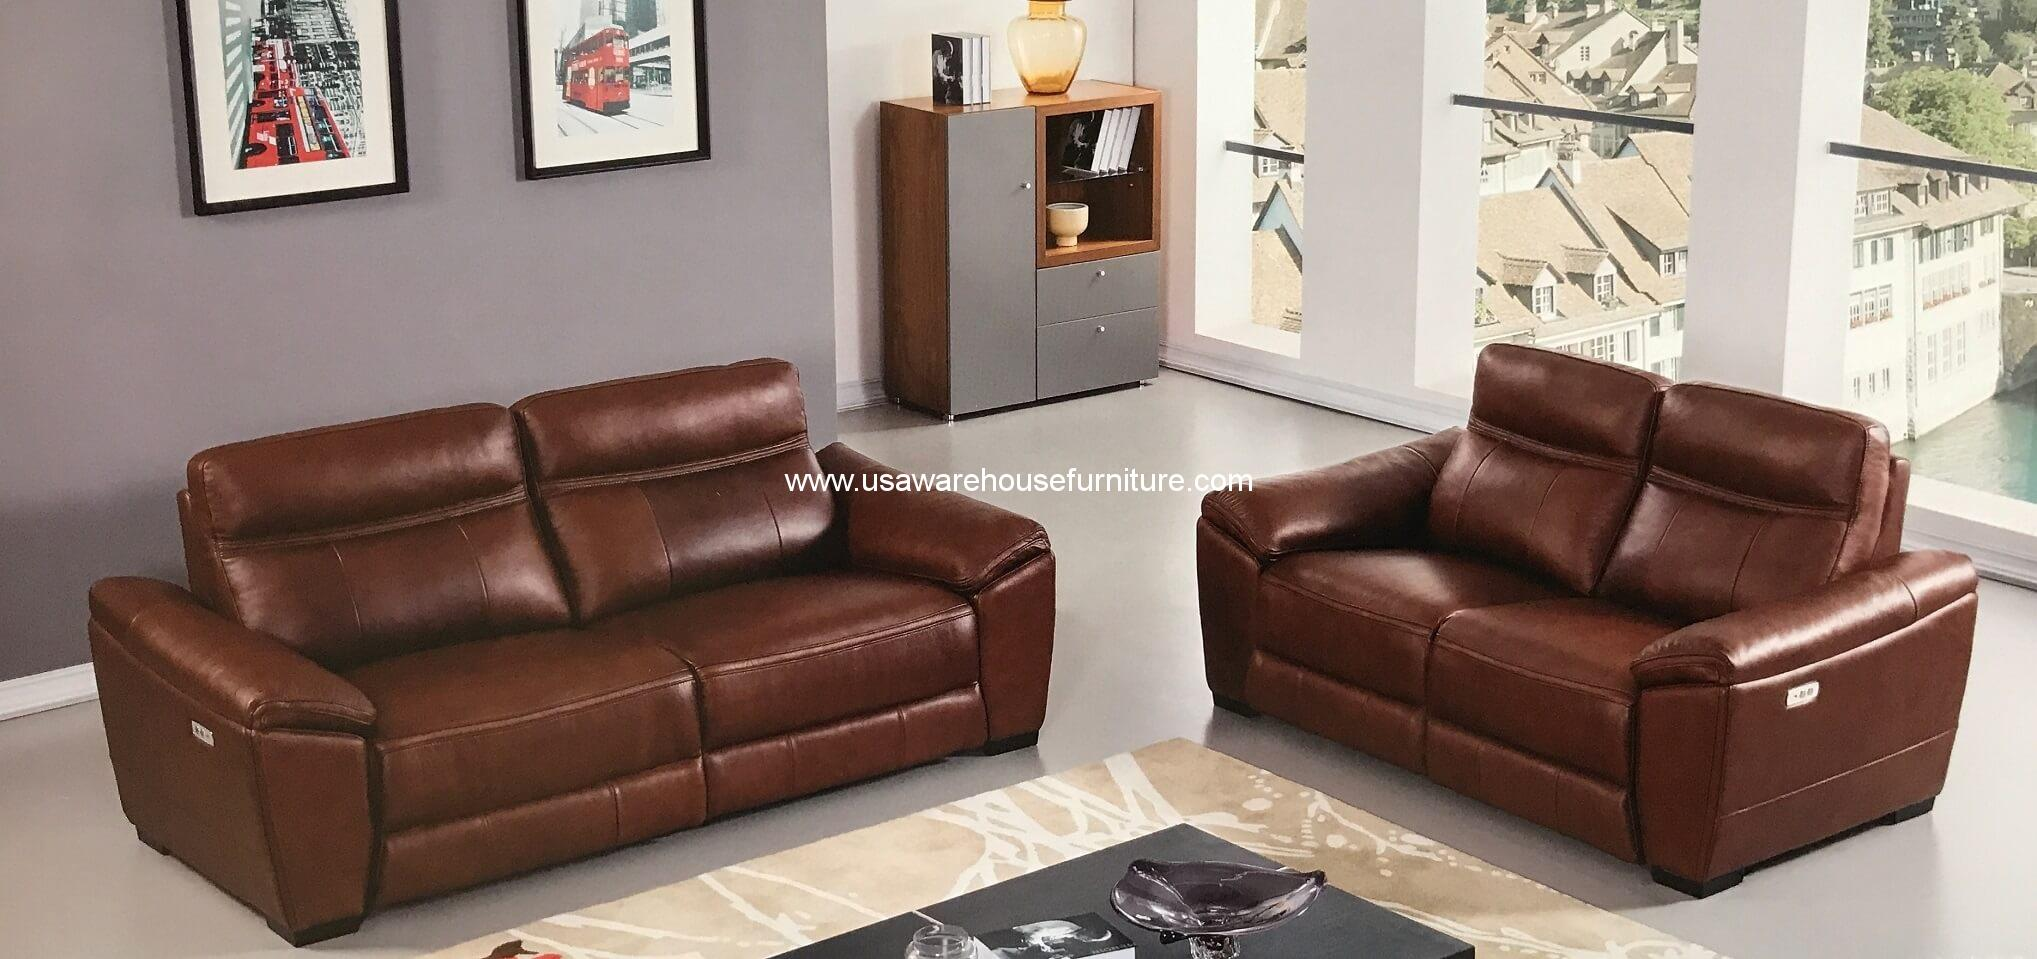 2 piece brown leather sofa l shaped sectional forma full italian power recliner